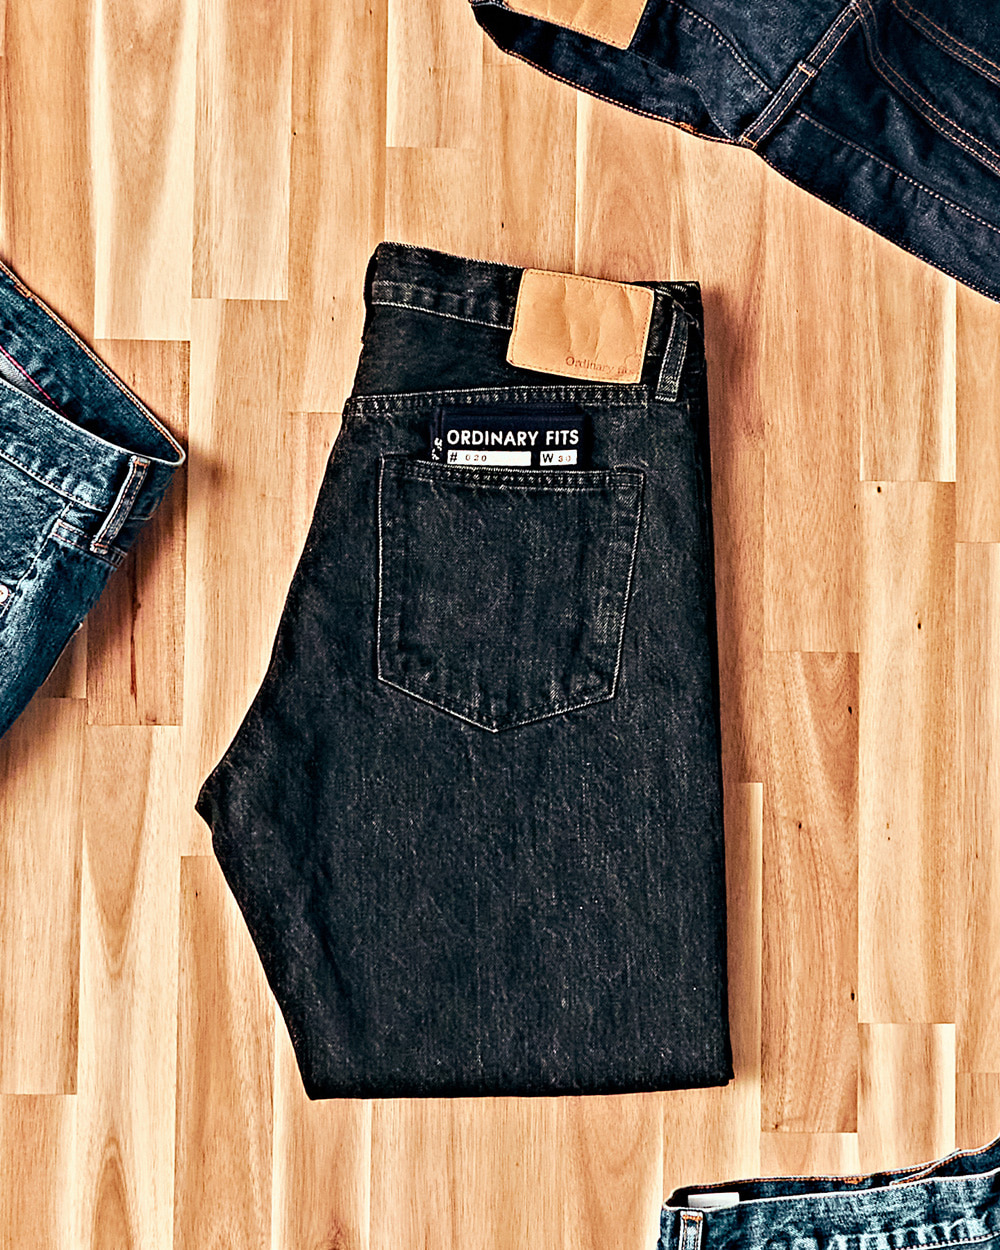 [ORDINARY FITS] Ankle Denim OM-P020 Black Used